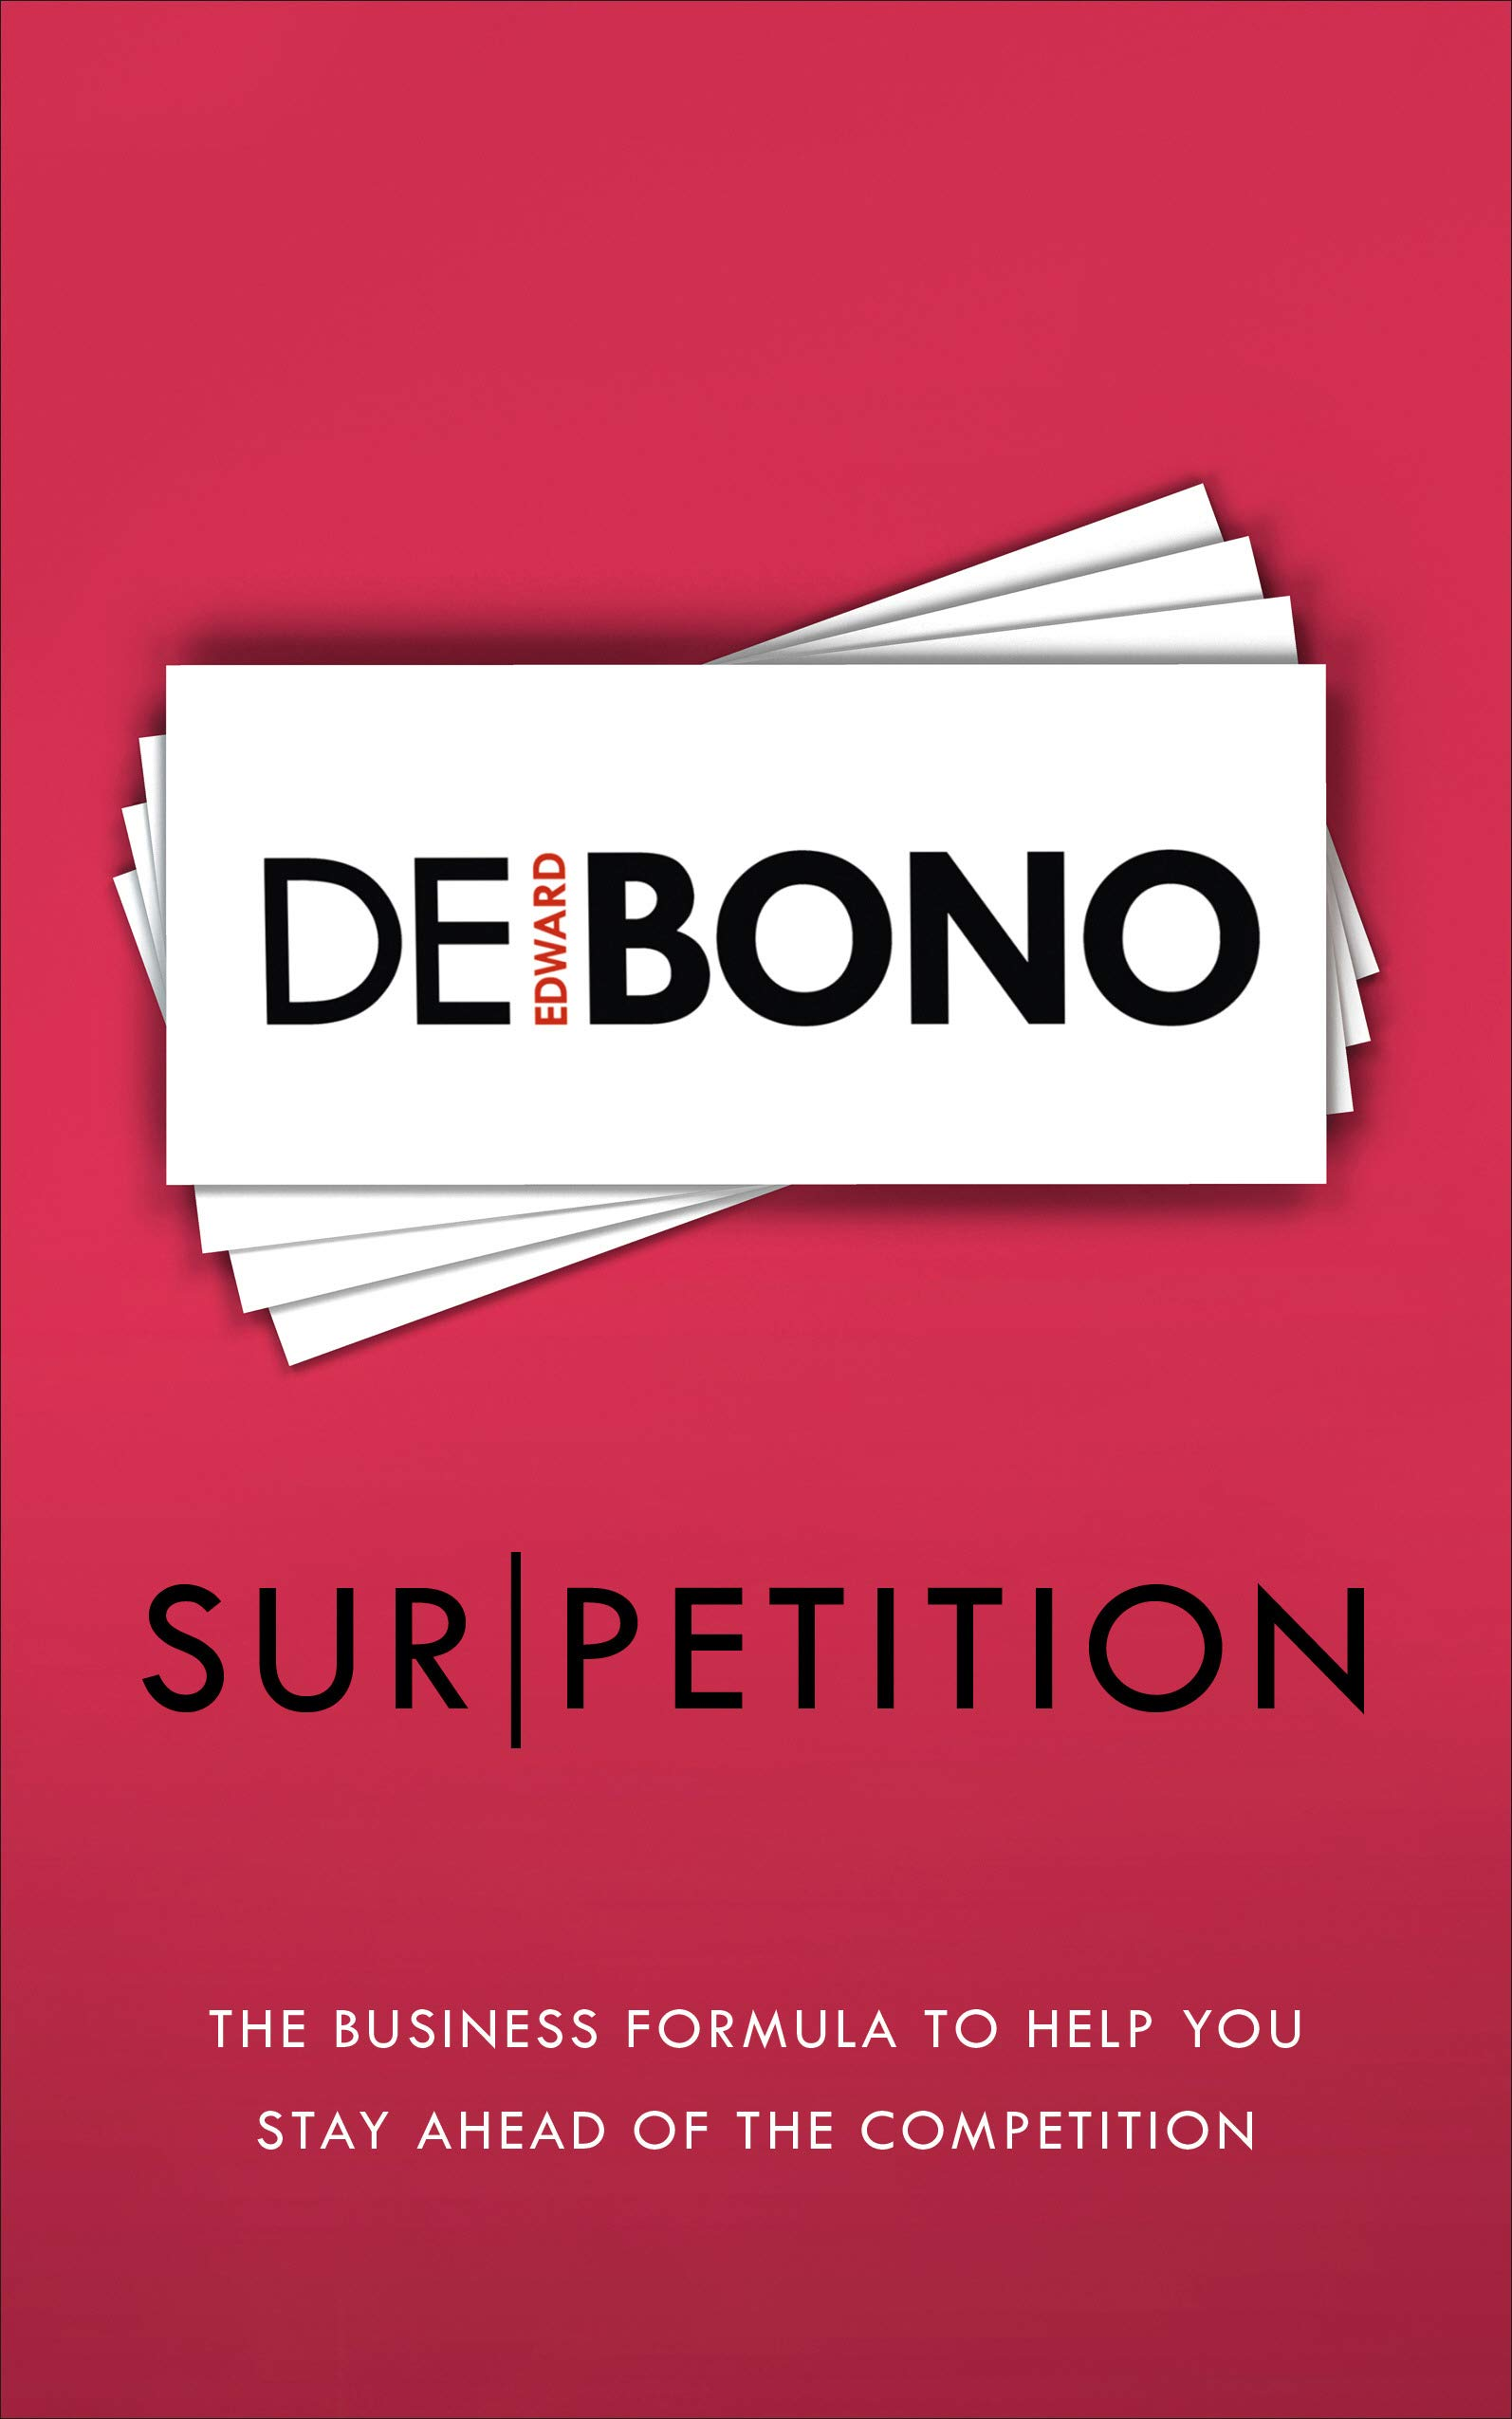 Sur/petition: Going Beyond Competition